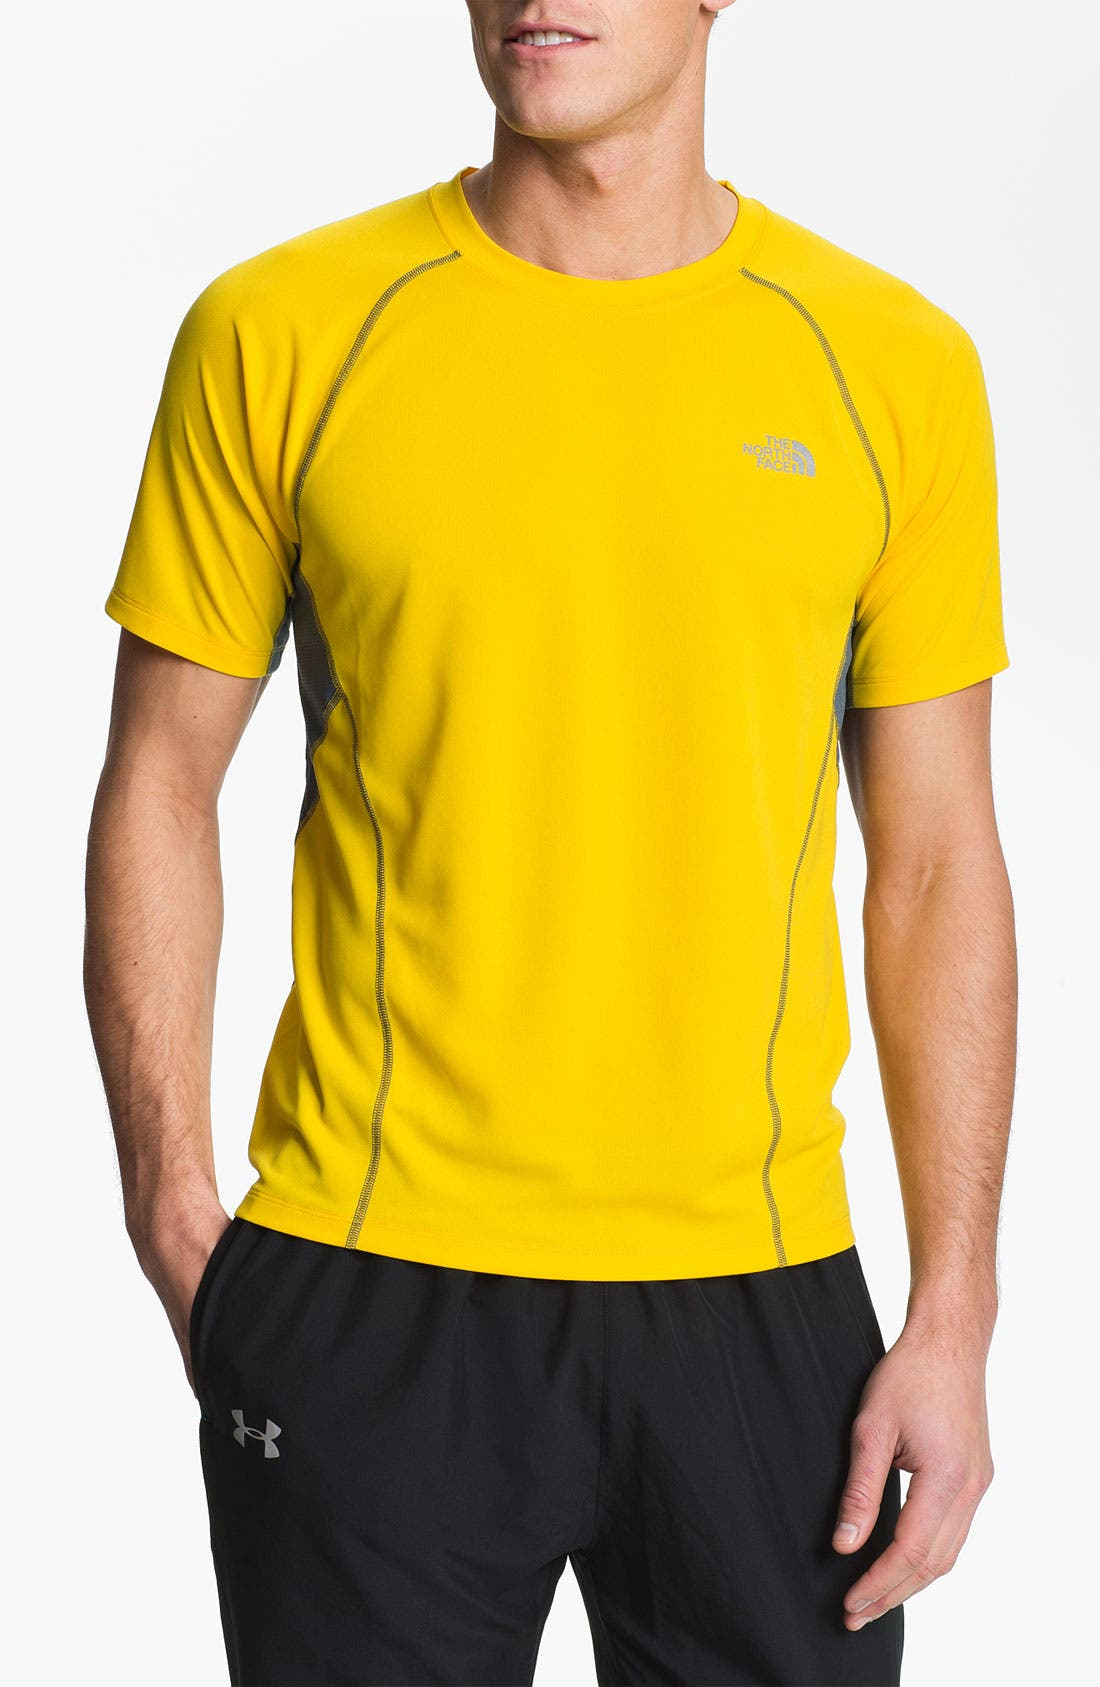 Alternate Image 1 Selected - The North Face 'GTD' T-Shirt